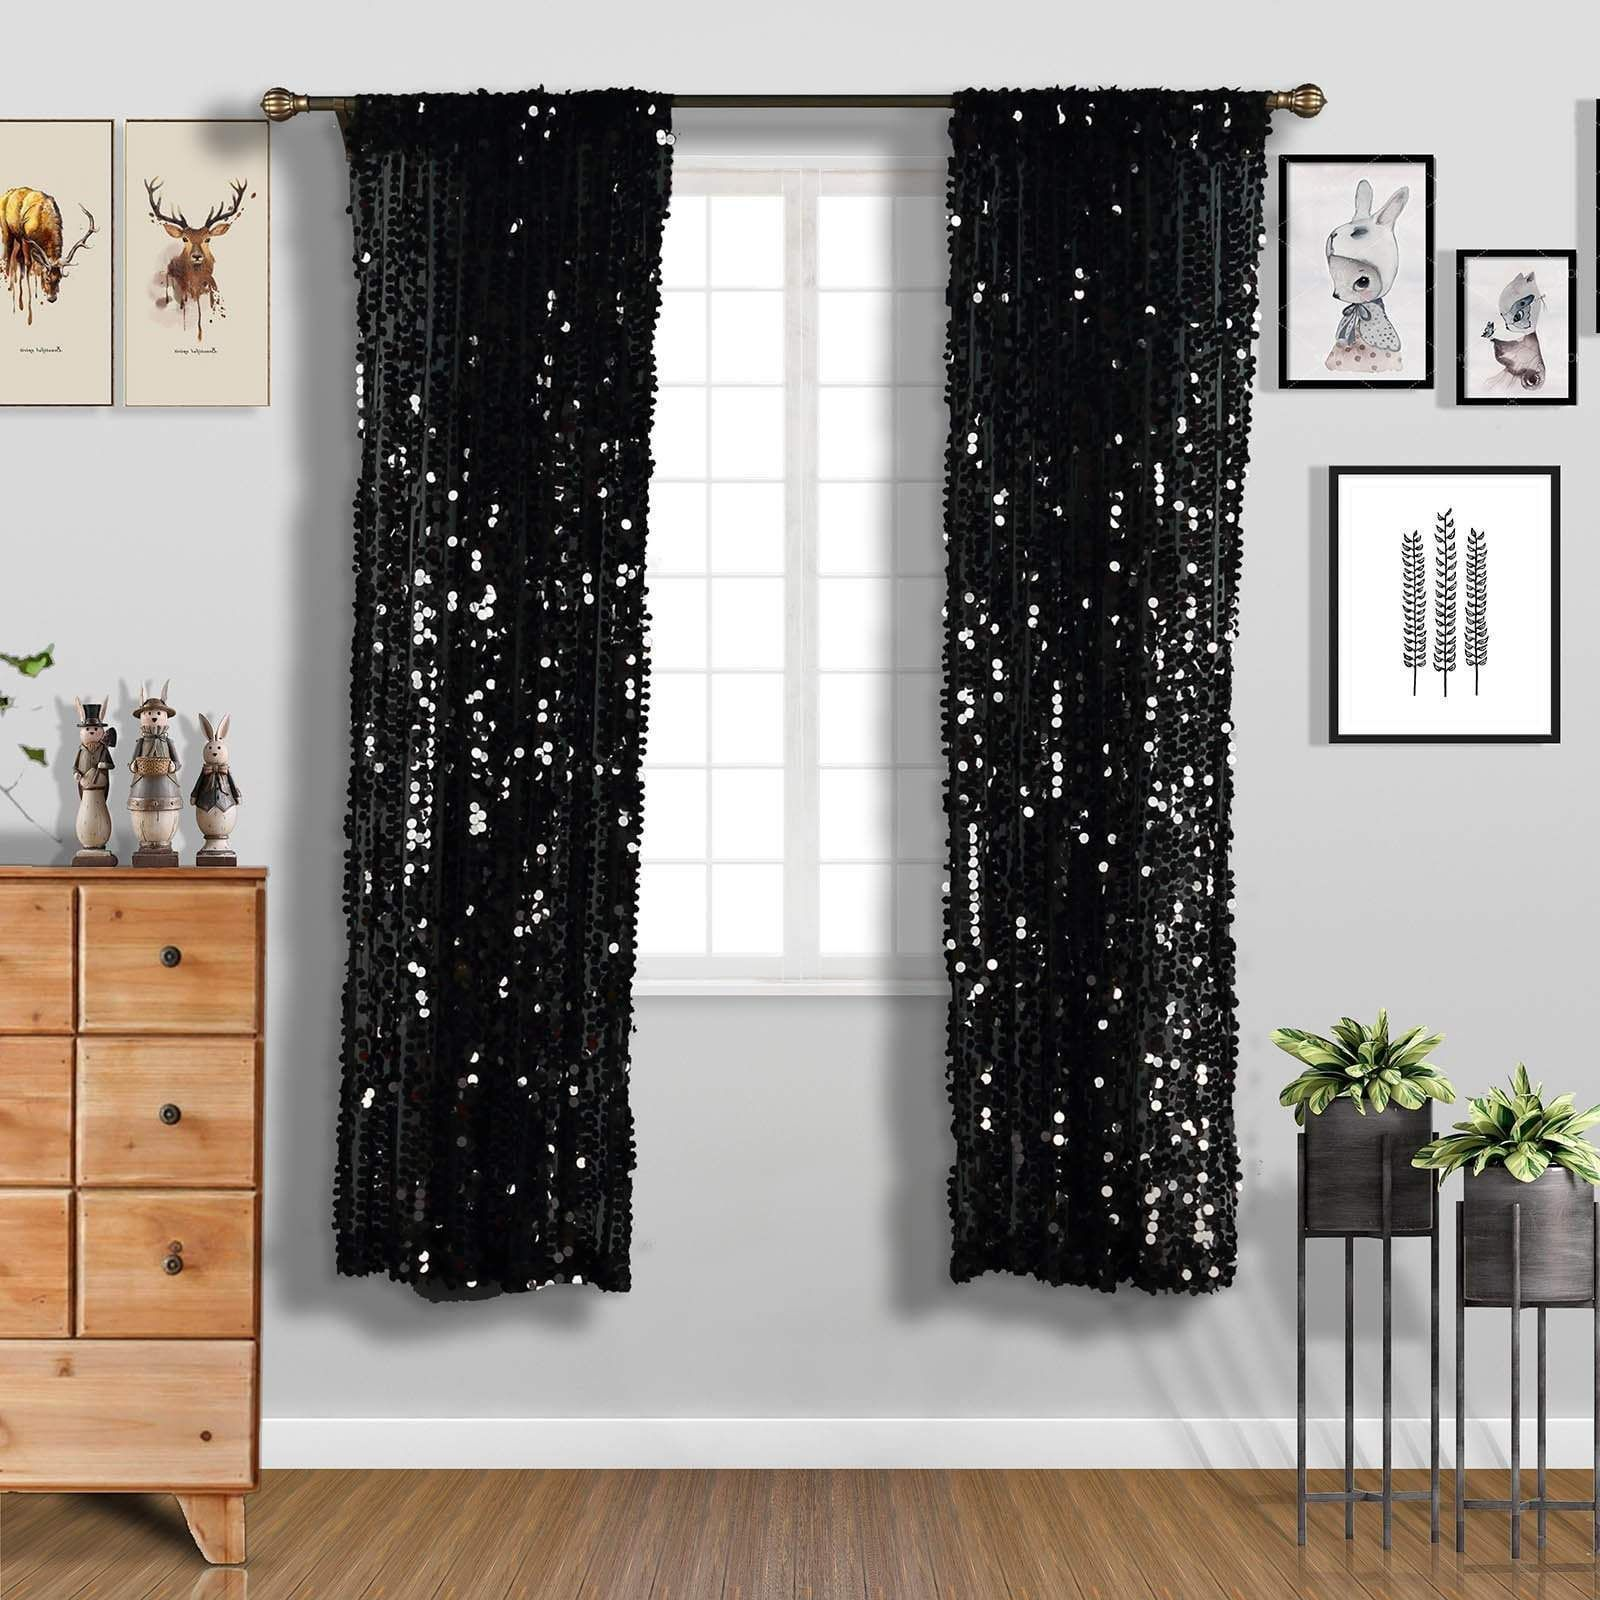 2 Pcs 52 X 84 Big Payette Sequin Window Curtains Drapes Panels